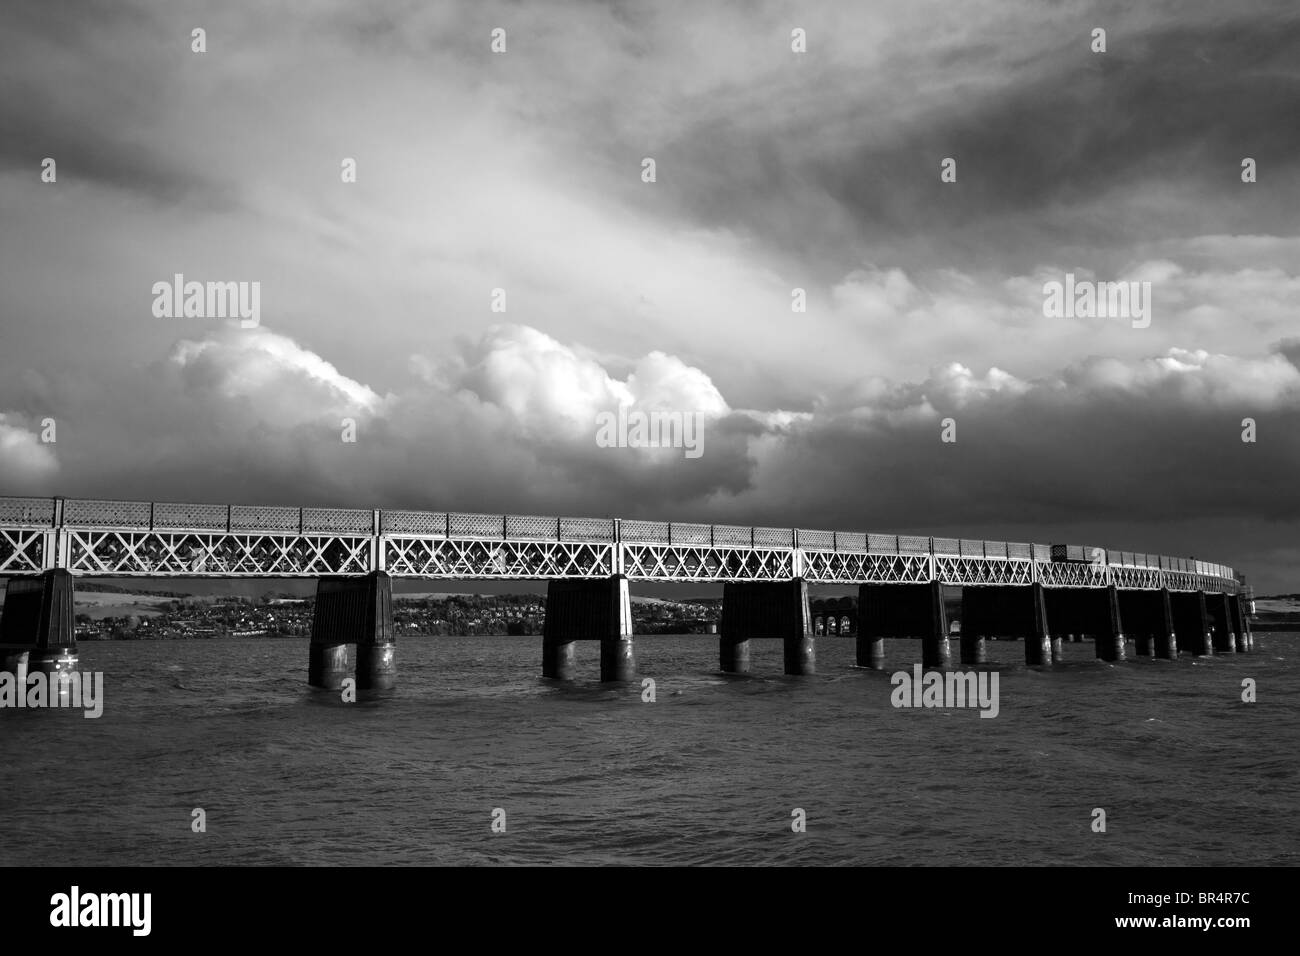 The Tay Railway Bridge, crossing the river Dundee, waterfront, Tayside, Scotland, UK - Stock Image